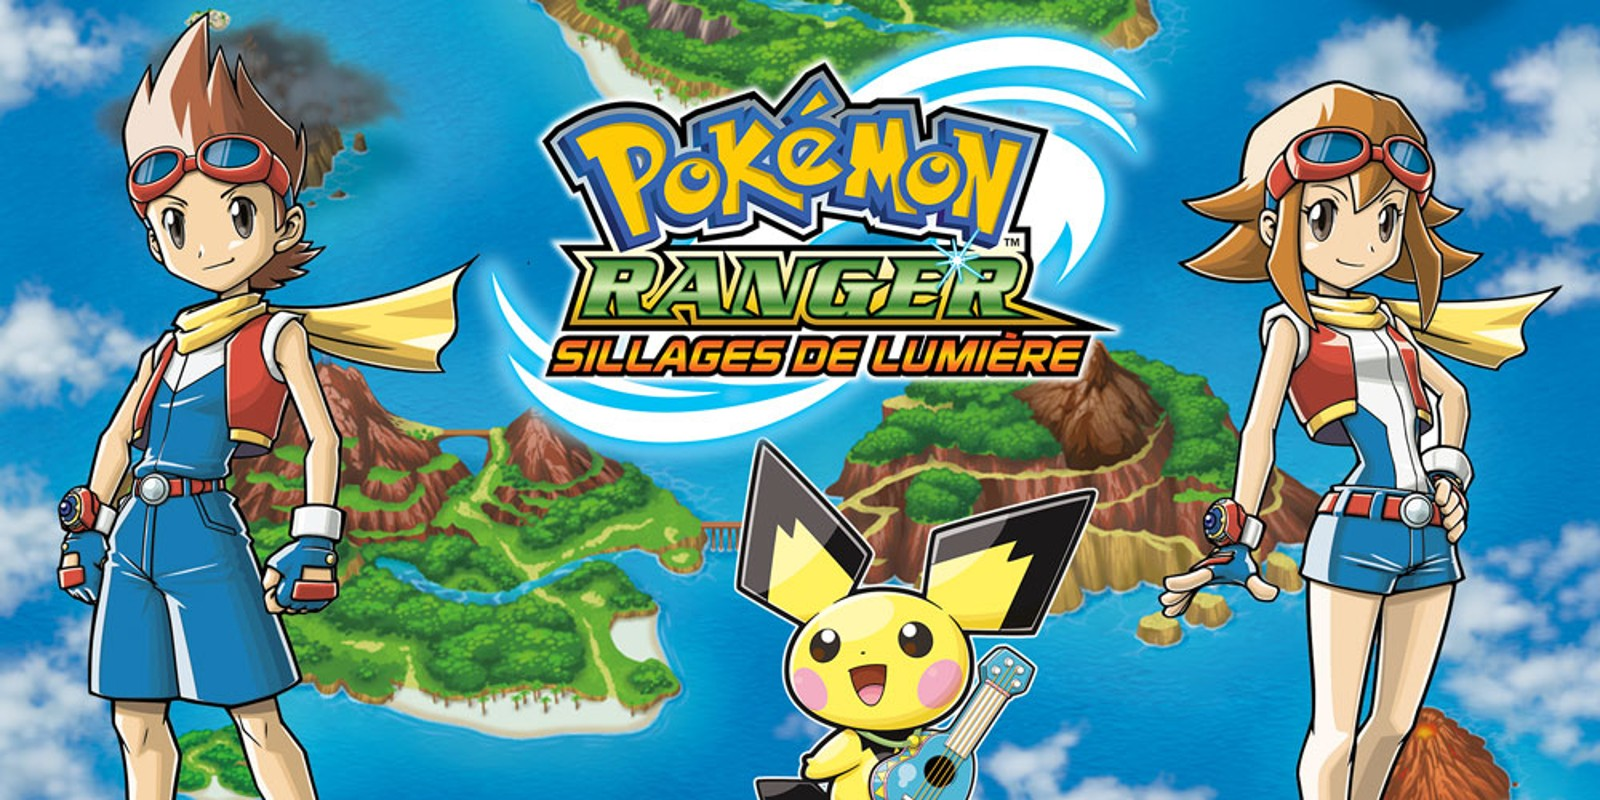 FR RANGER SILLAGE LUMIERE POKEMON TÉLÉCHARGER DE ROM